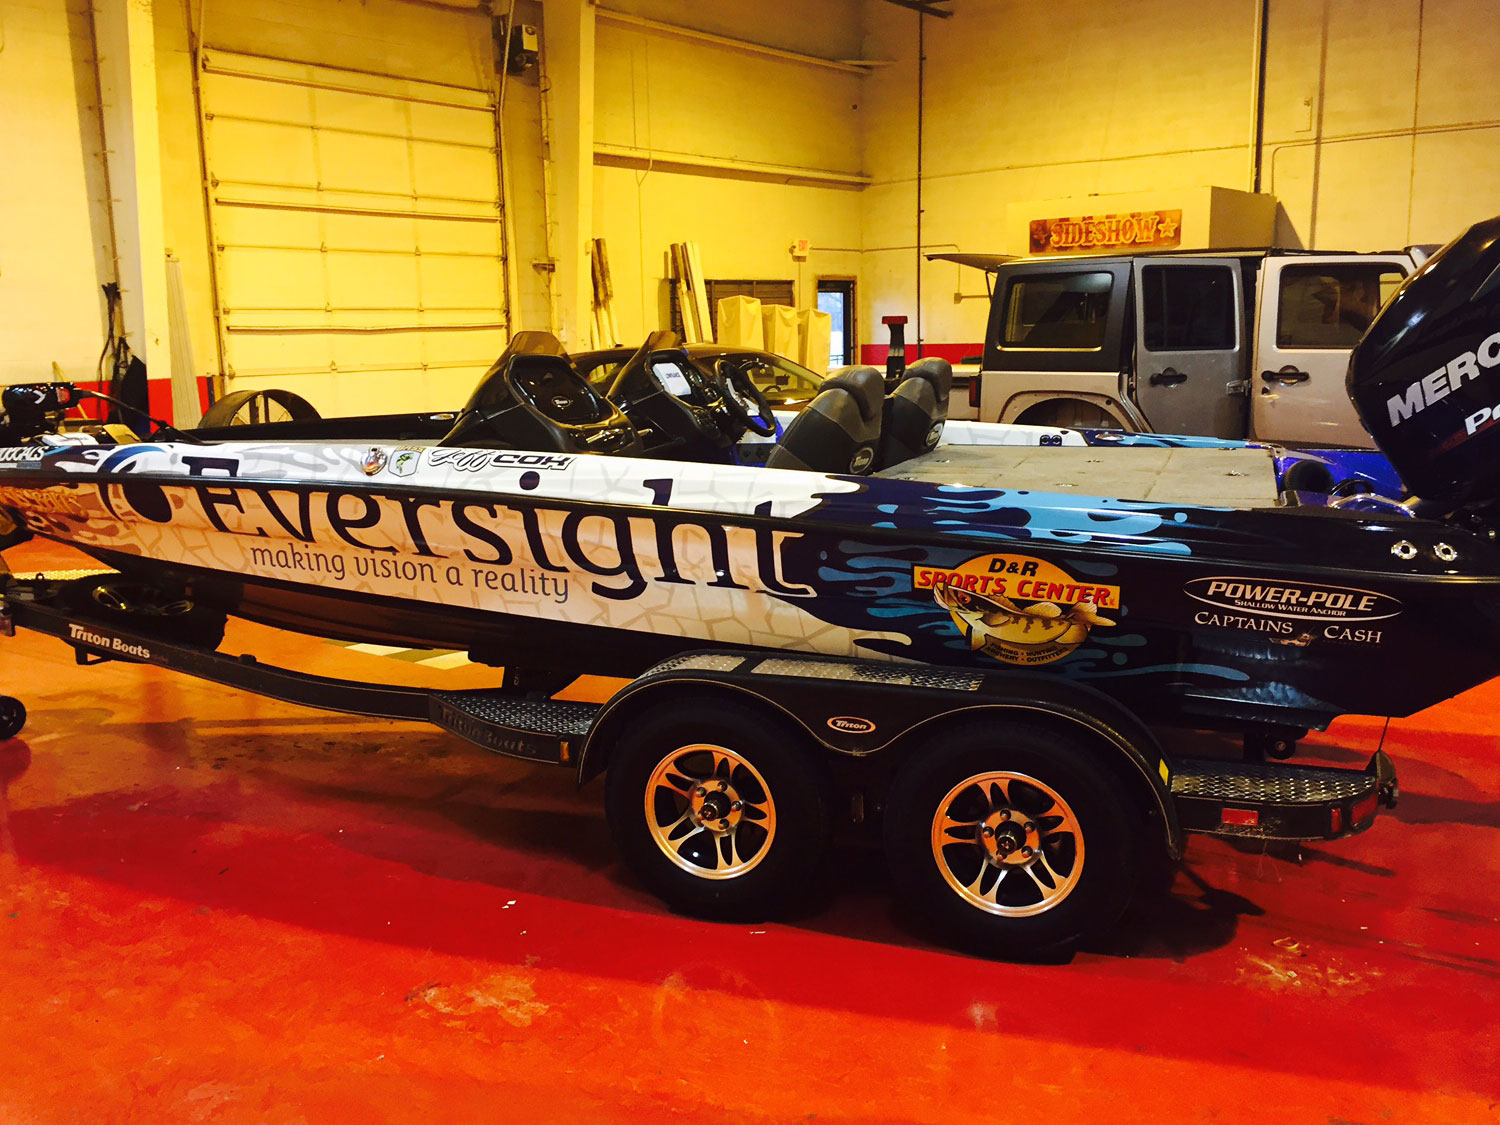 Eversight Boat Graphics